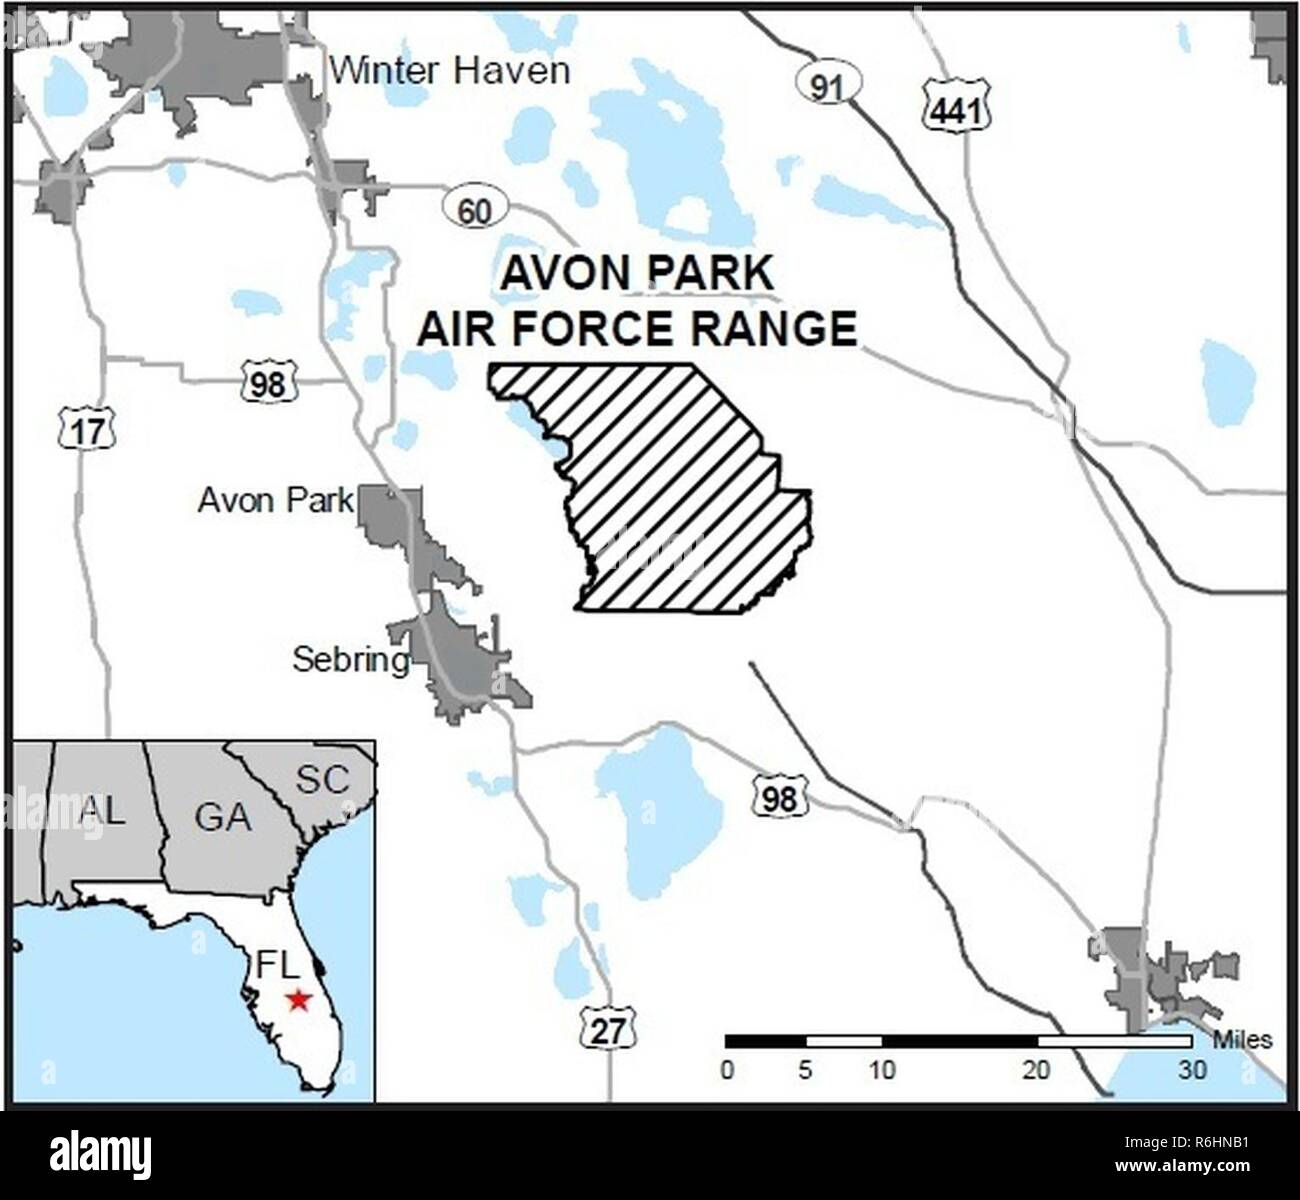 Florida Forest Fire Map.Map Of Avon Park Air Force Range Florida An Air Force Wildland